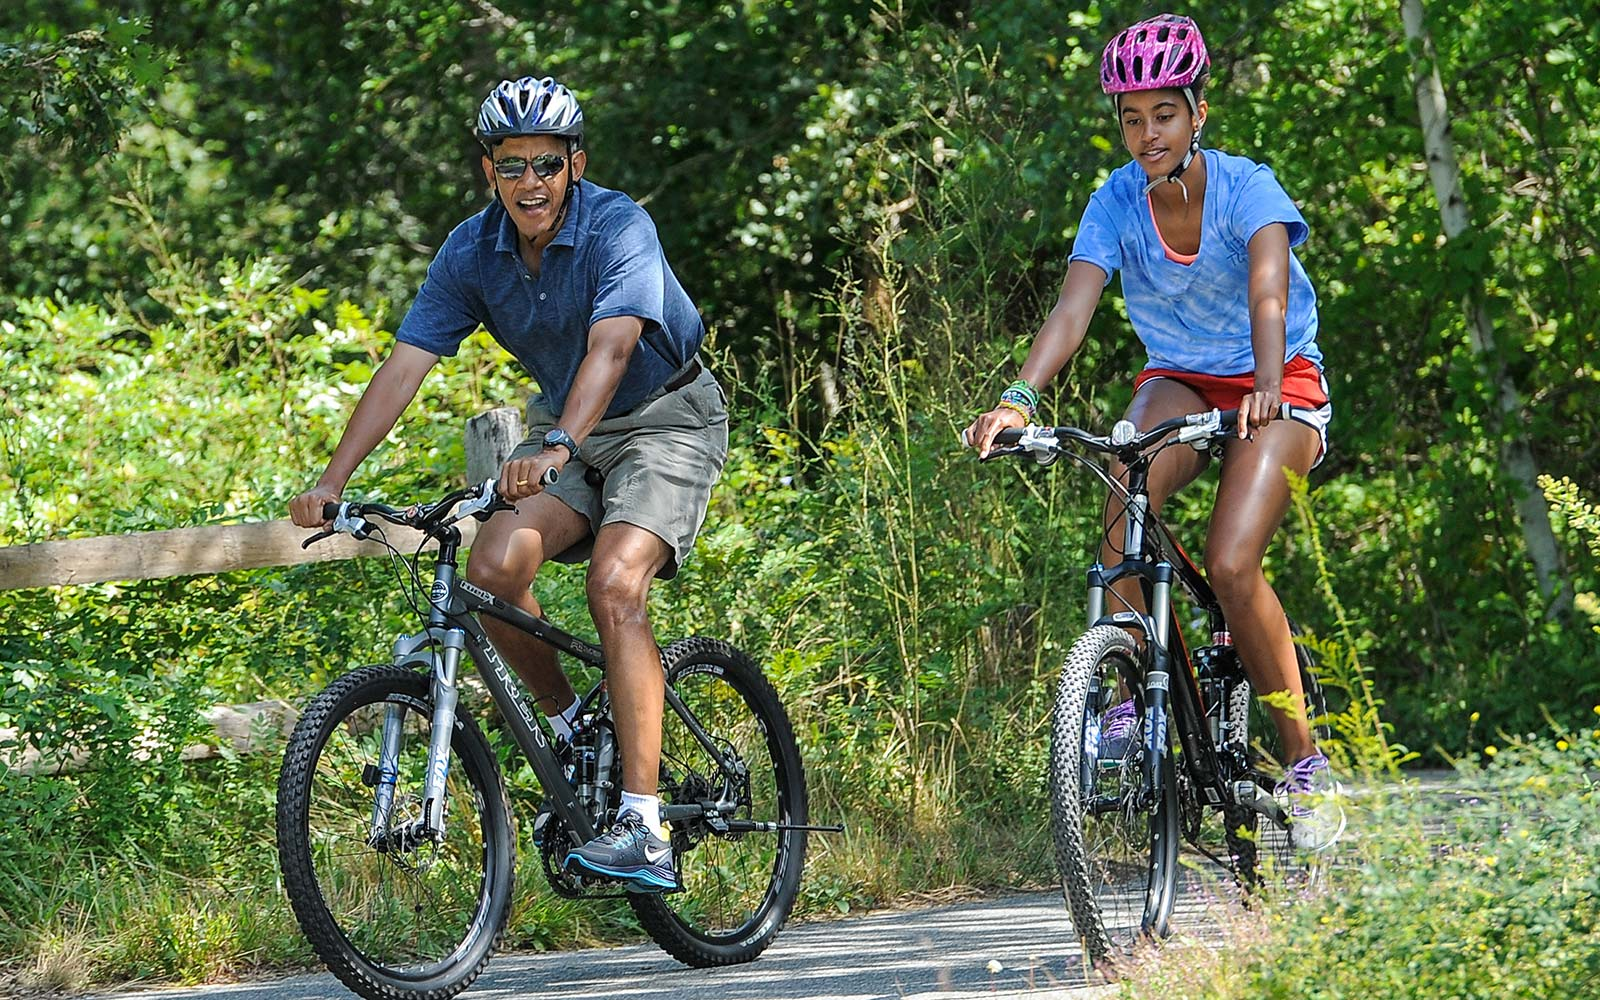 Barack Obama and his daughter Malia Obama ride a bike during a vacation on Martha's Vineyard in West Tisbury, Massachusetts. Obama and his family are on a weeklong vacation